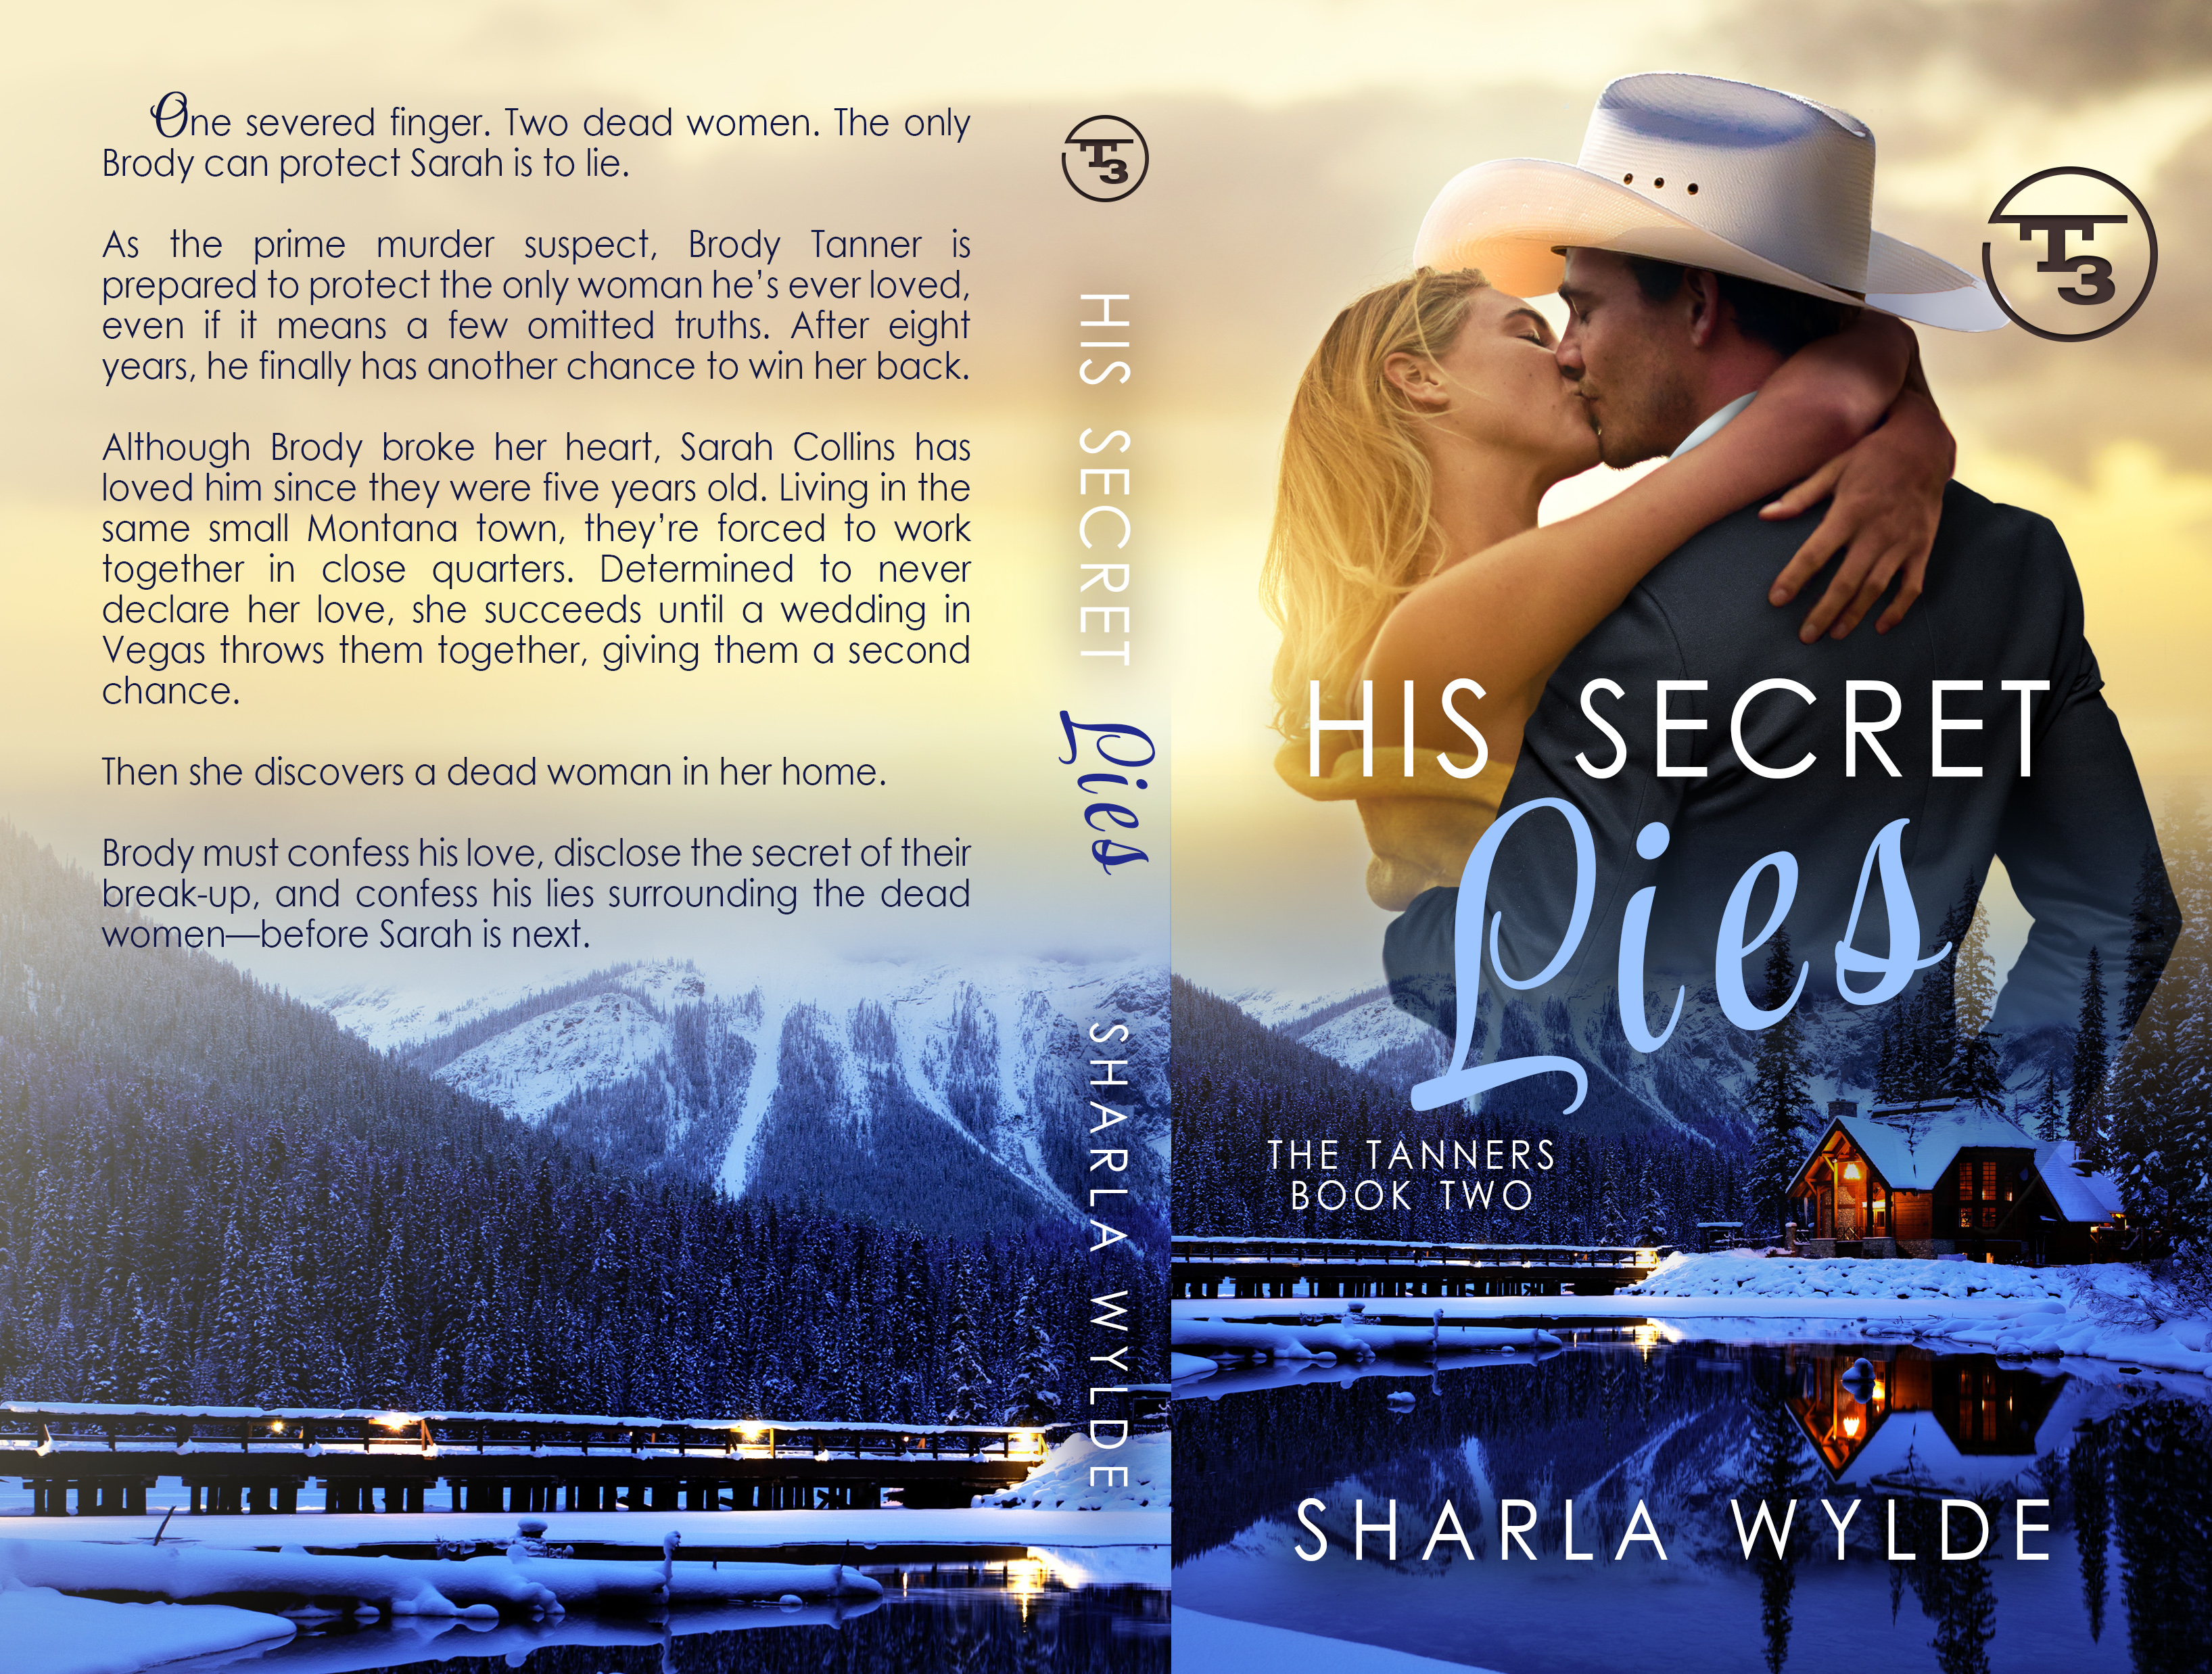 His Secret Lies full cover 5x8_BW_290